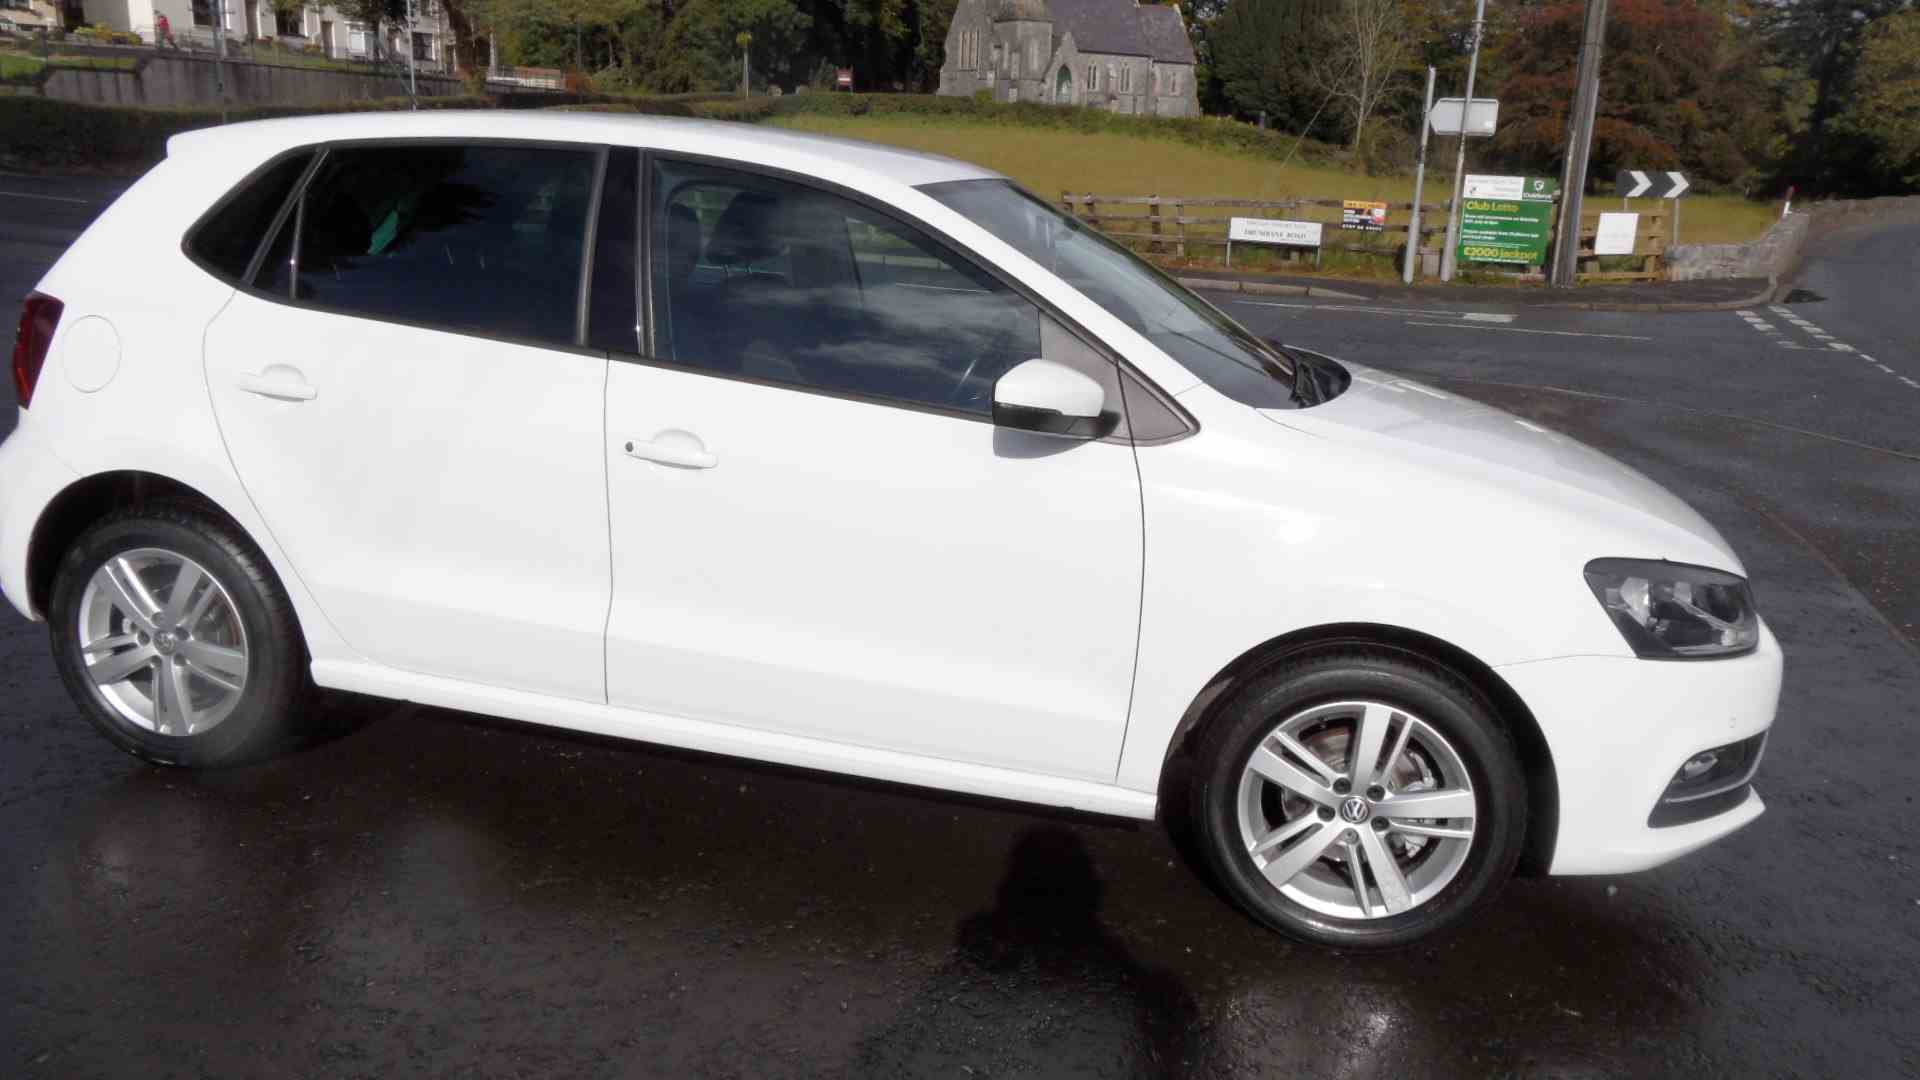 3 vw services, parking sensors front and rear, beautiful car, call Sean on 07970936458 or 02879401371 for more details and arrange a test drive. Also keen finance available with Northridge, Santander Consumer Finance and Motonovo